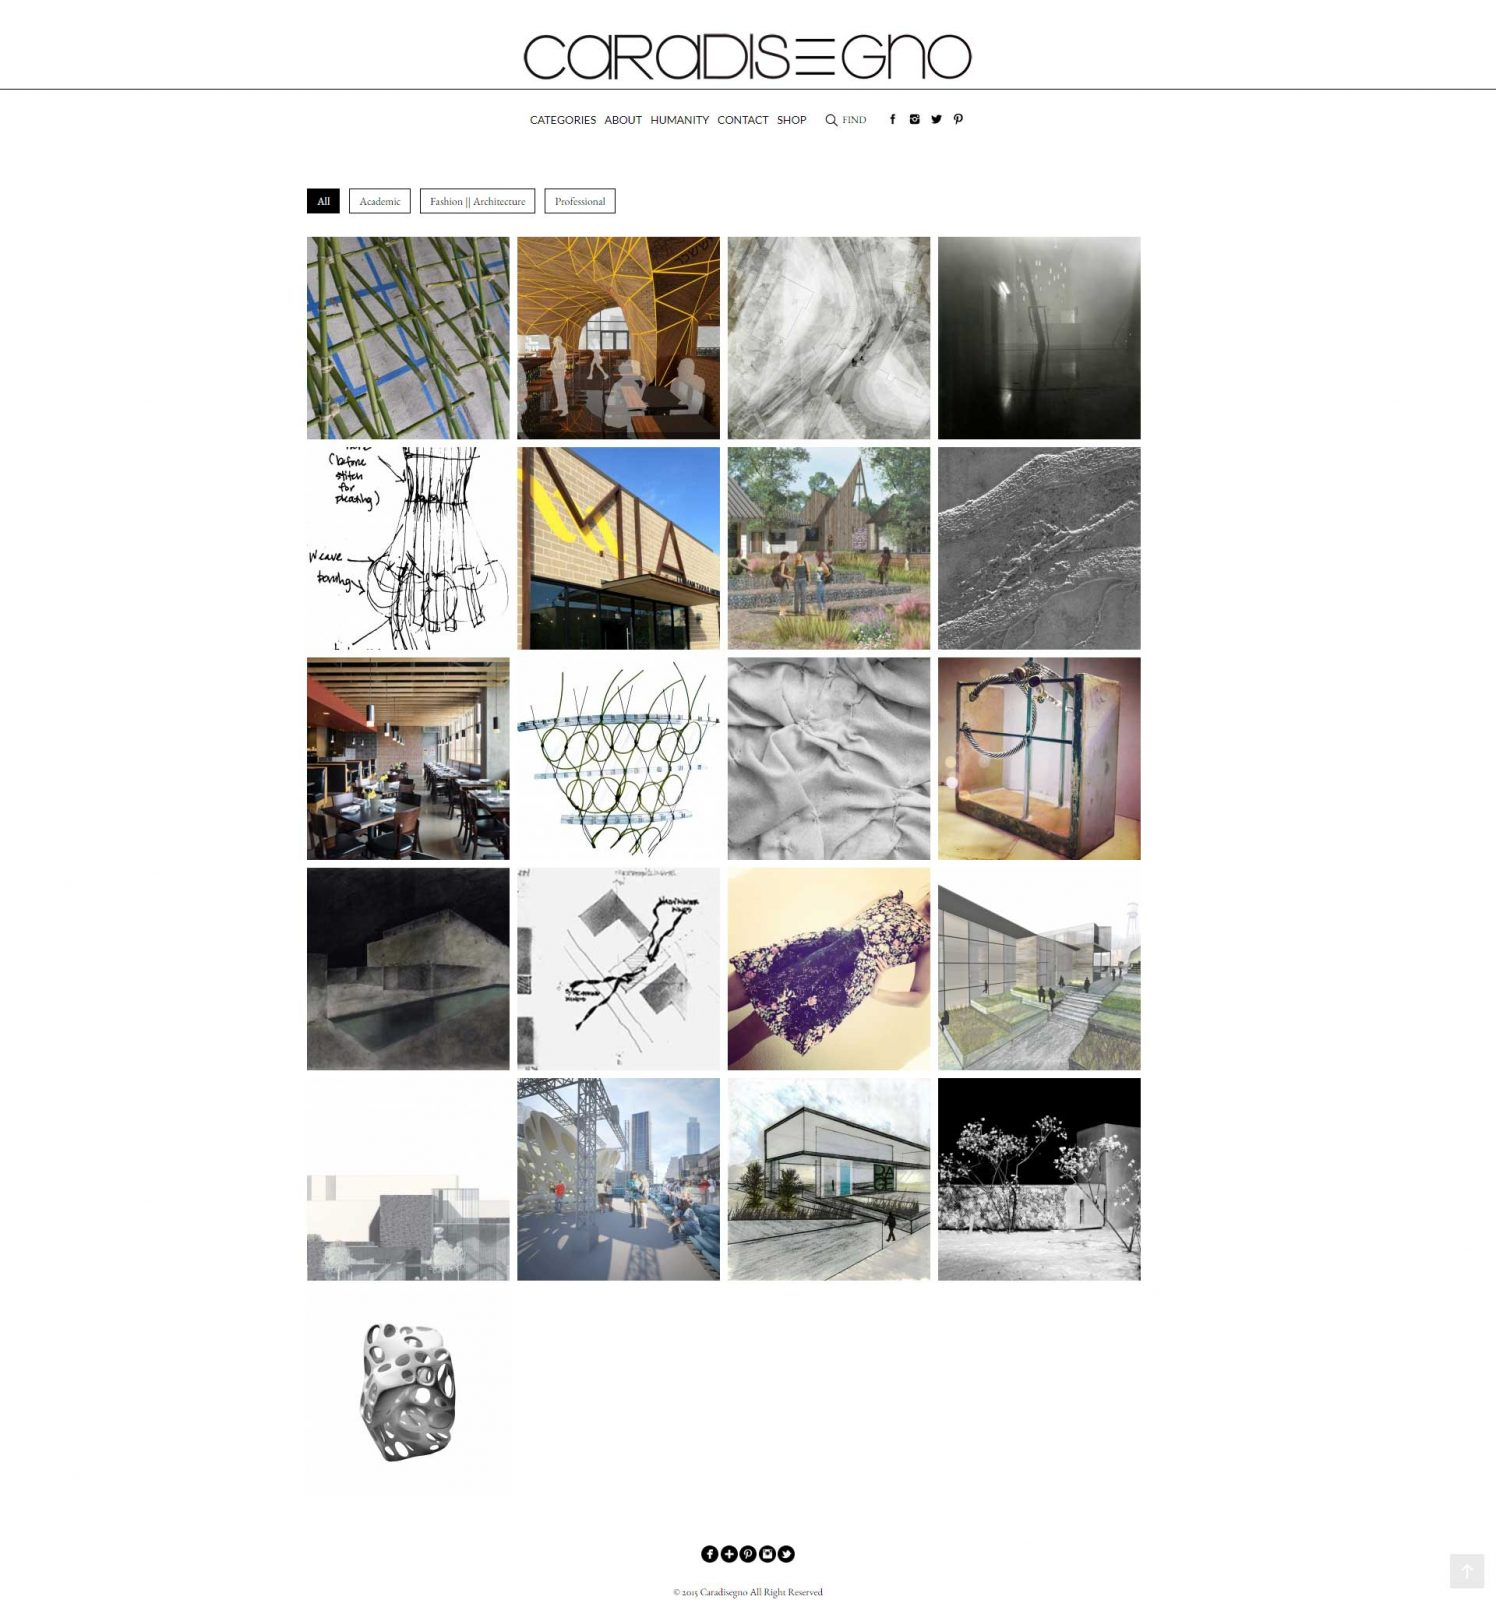 Caradisegno-Website-Design-Project-Architecture-Page